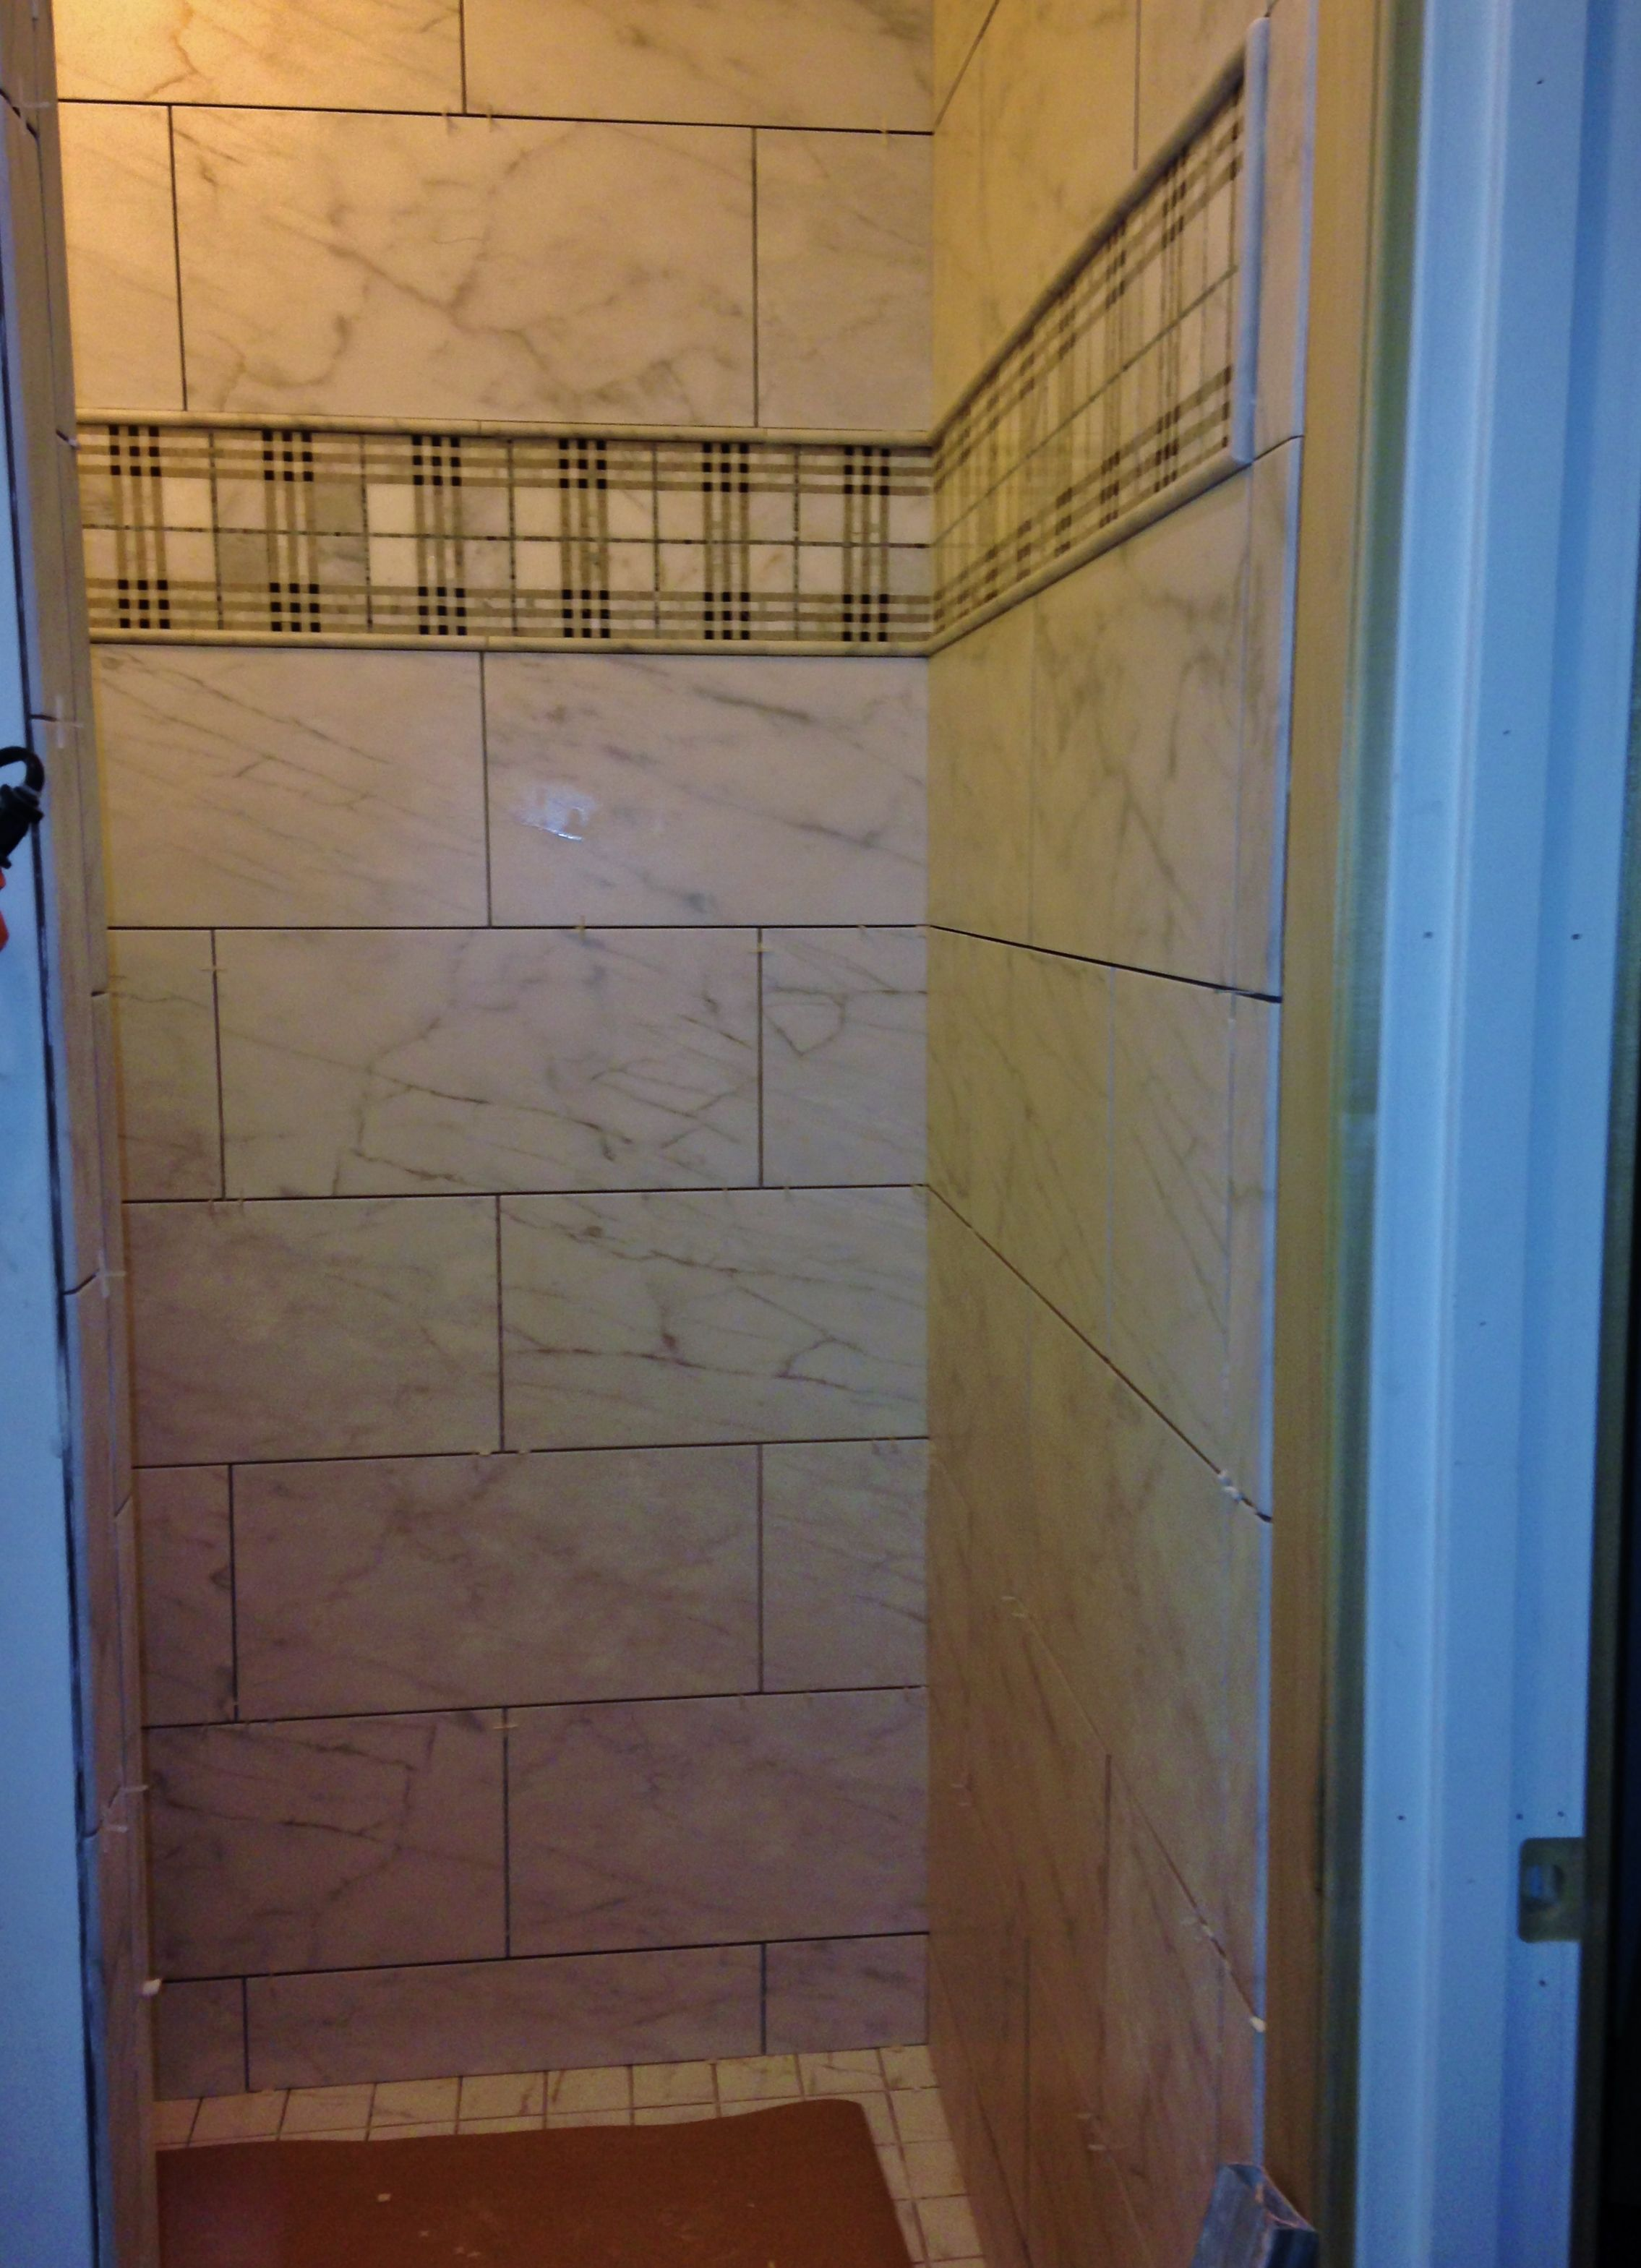 Pin On Tile Jobs We Ve Done In And Around Charleston Sc